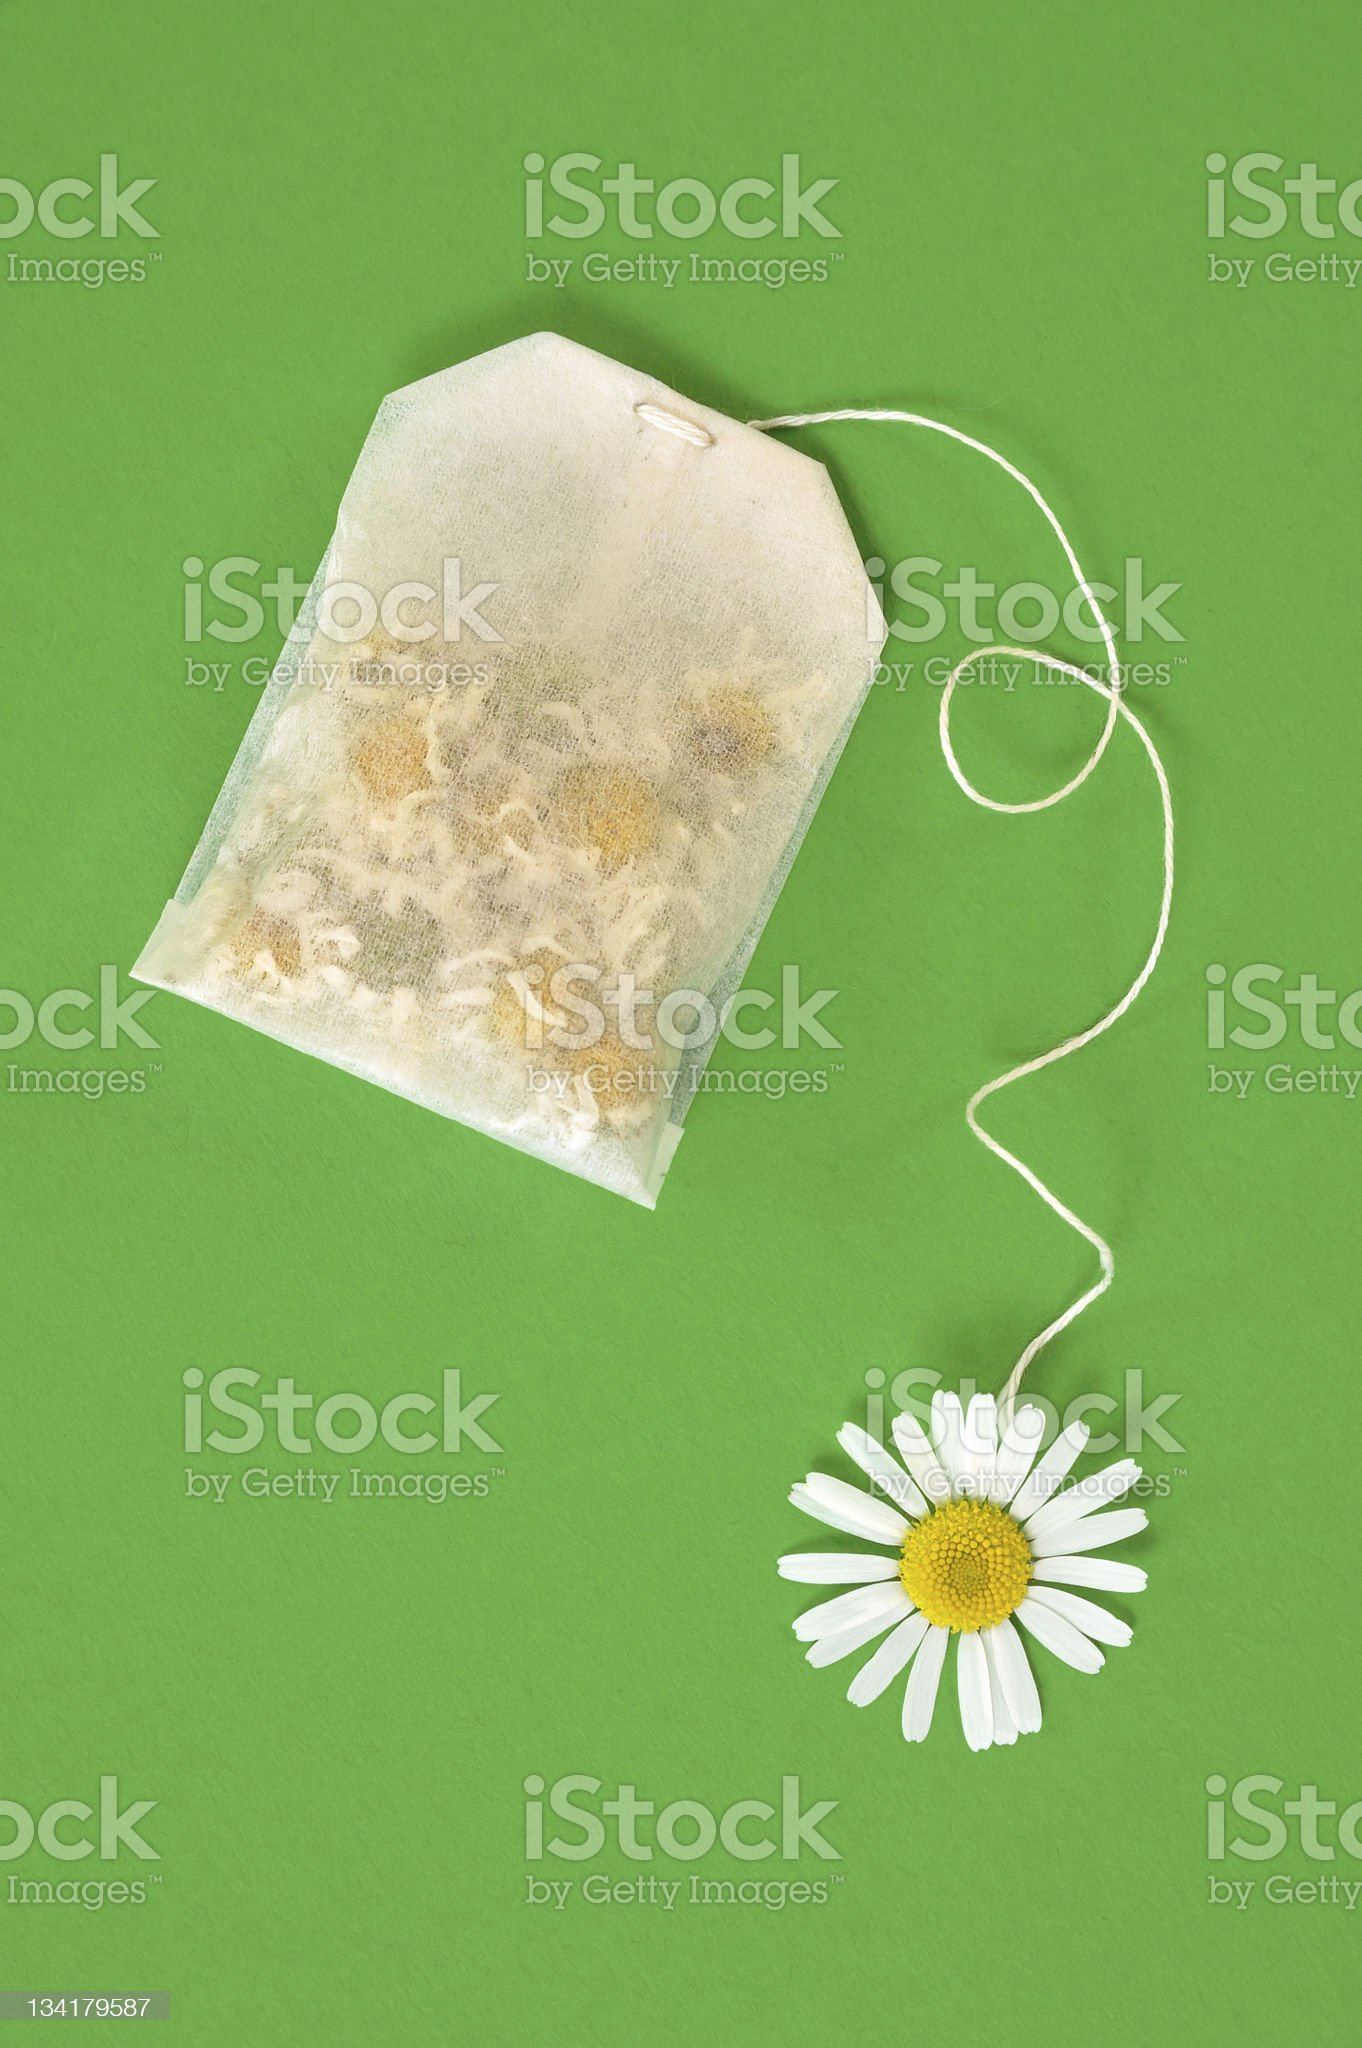 Bag of chamomile tea over green background - concept royalty-free stock photo